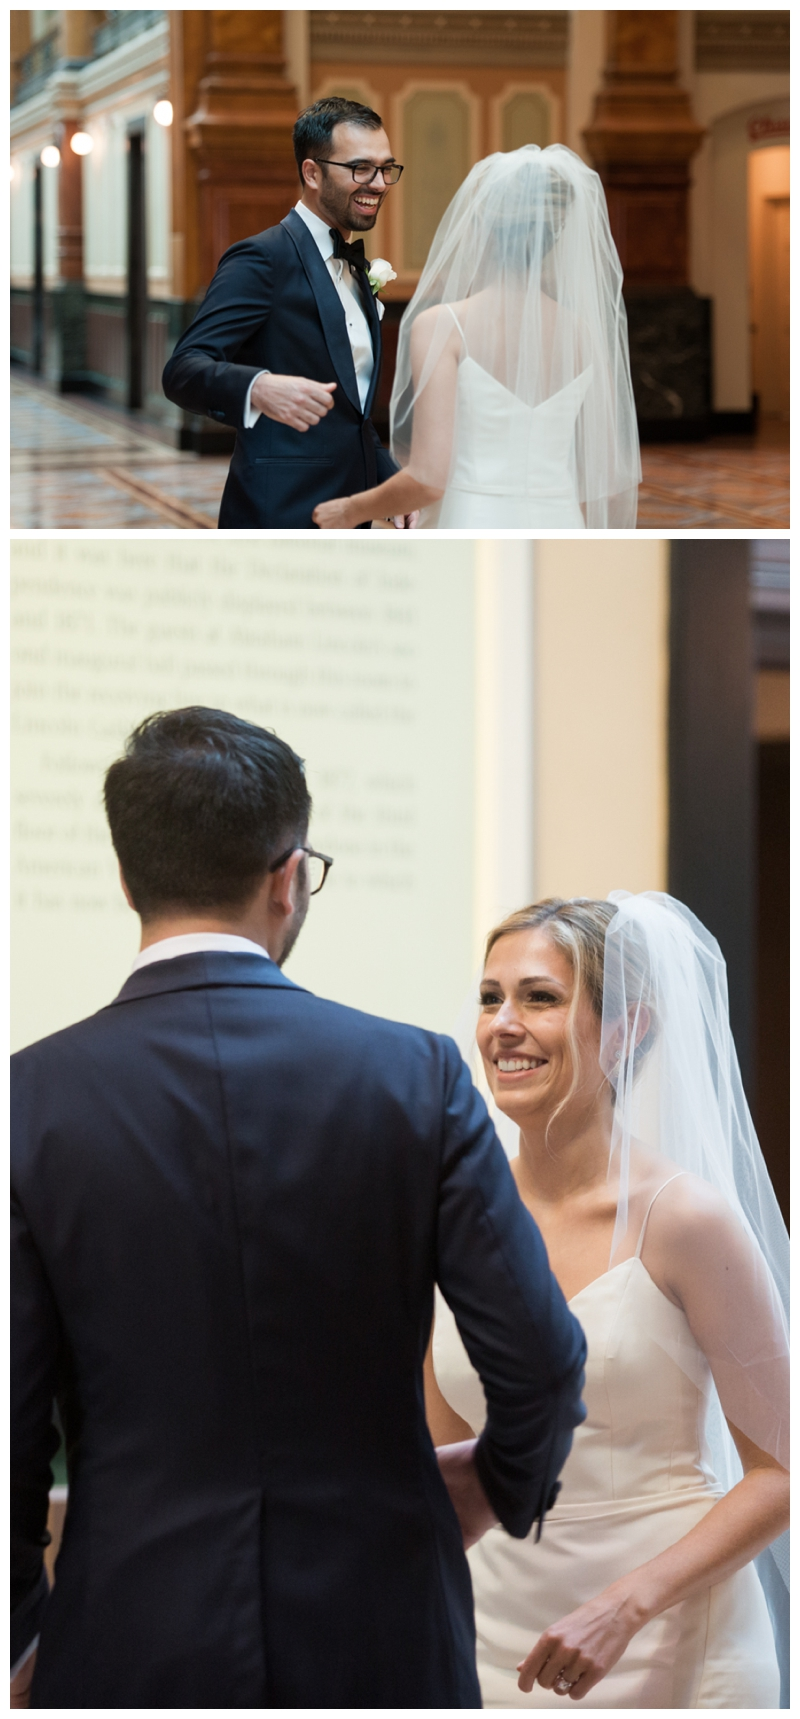 Wedding in Washington DC at the National Portrait Gallery by Rachael Foster Photography_0017.jpg